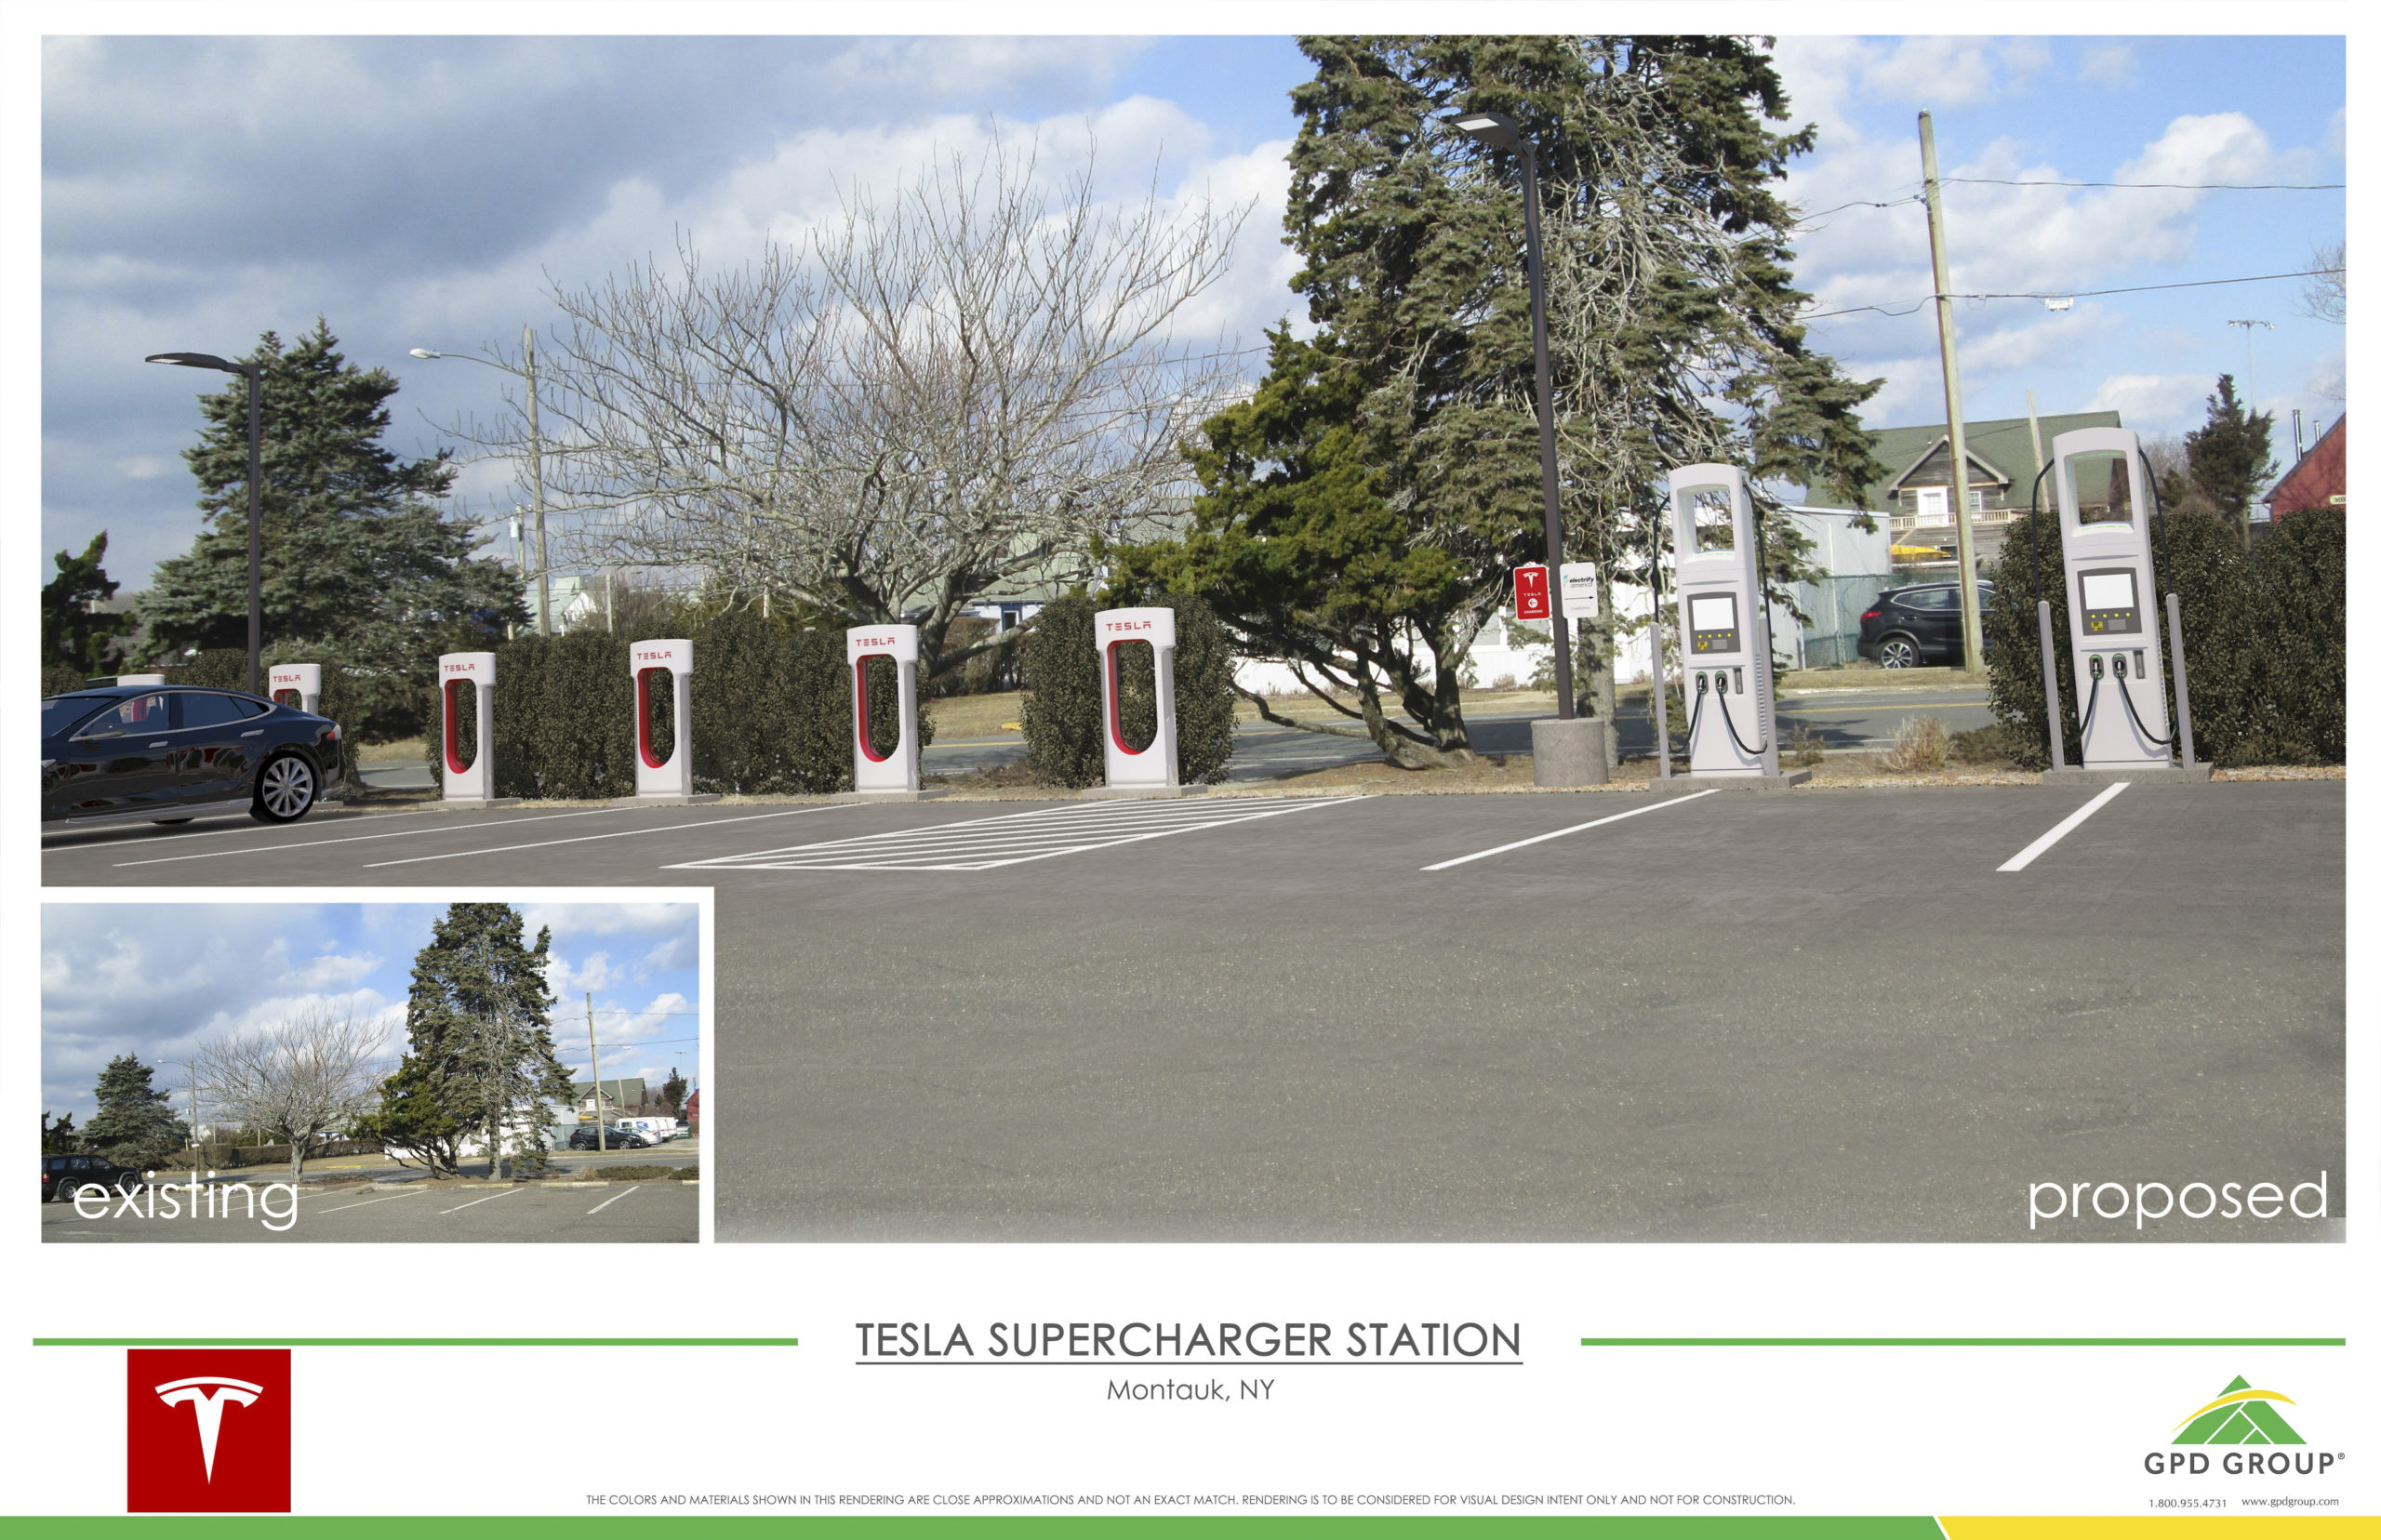 Renderings of the proposed charging stations that Tesla and Electrify America have proposed installing in Montauk.